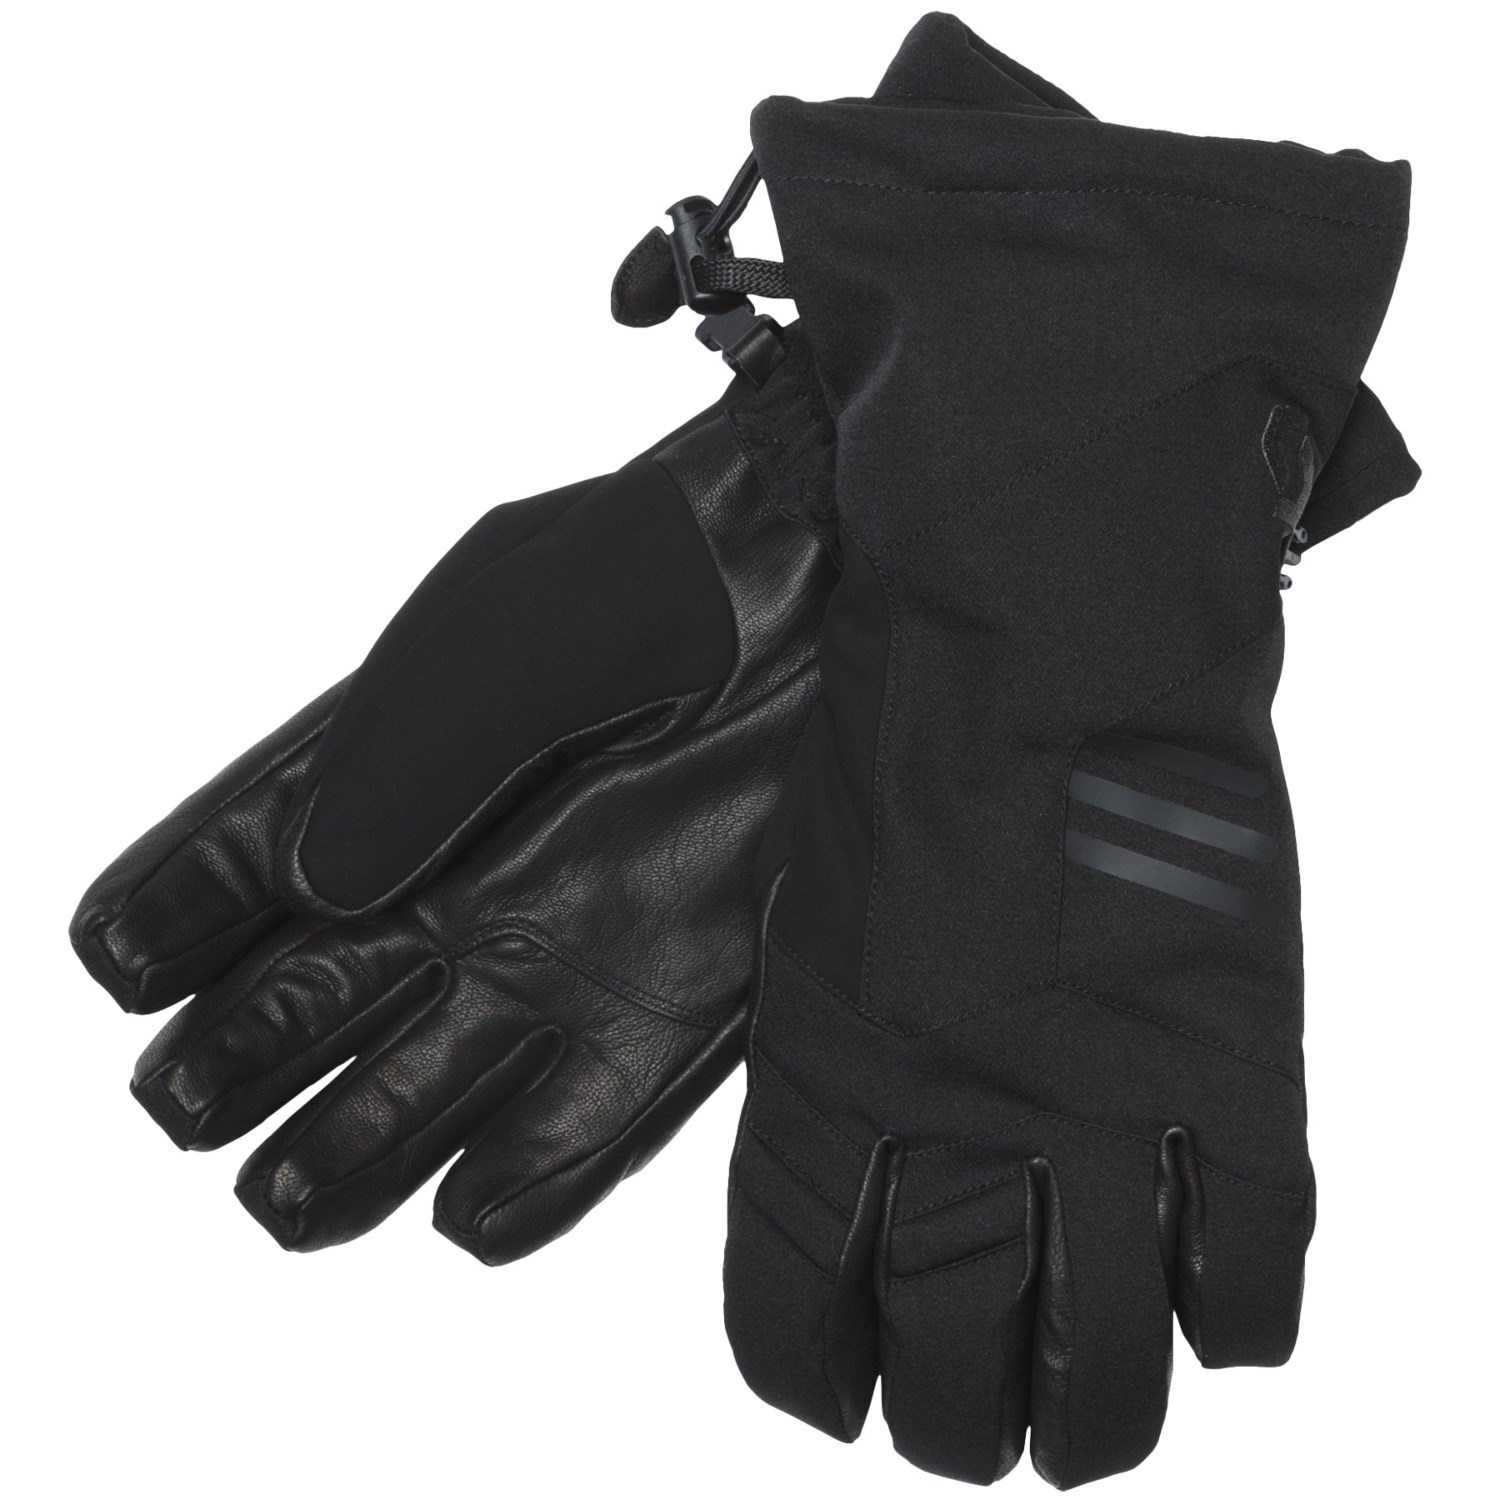 Men's gloves - Westfield has them all You're sure to find the gloves you need when you buy with Westfield. Our online catalogue lets you look quickly and easily for .